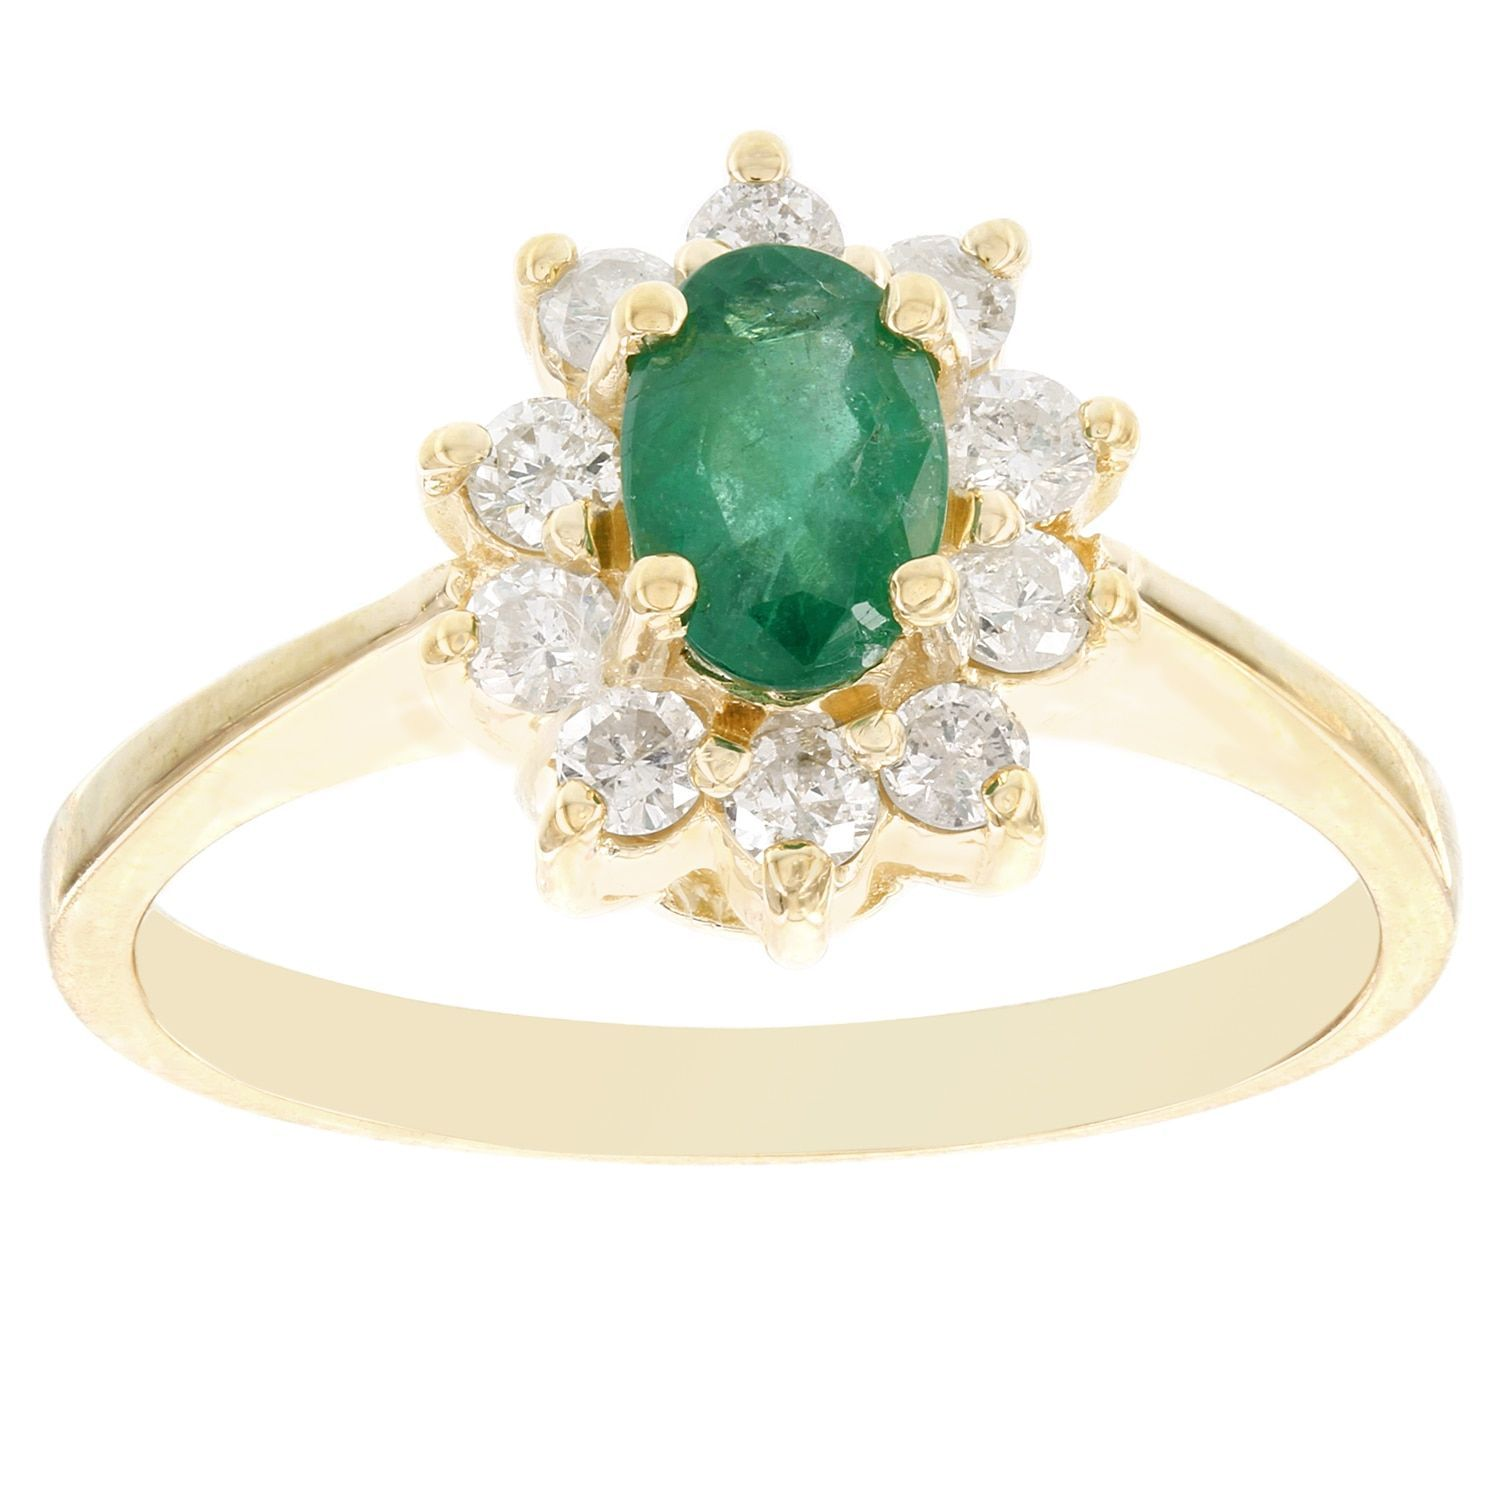 this a and estate approx in img grams ring stone vintage is green rings measures the weighs yellow gemstone size three shank diamond band tourmaline oval gold